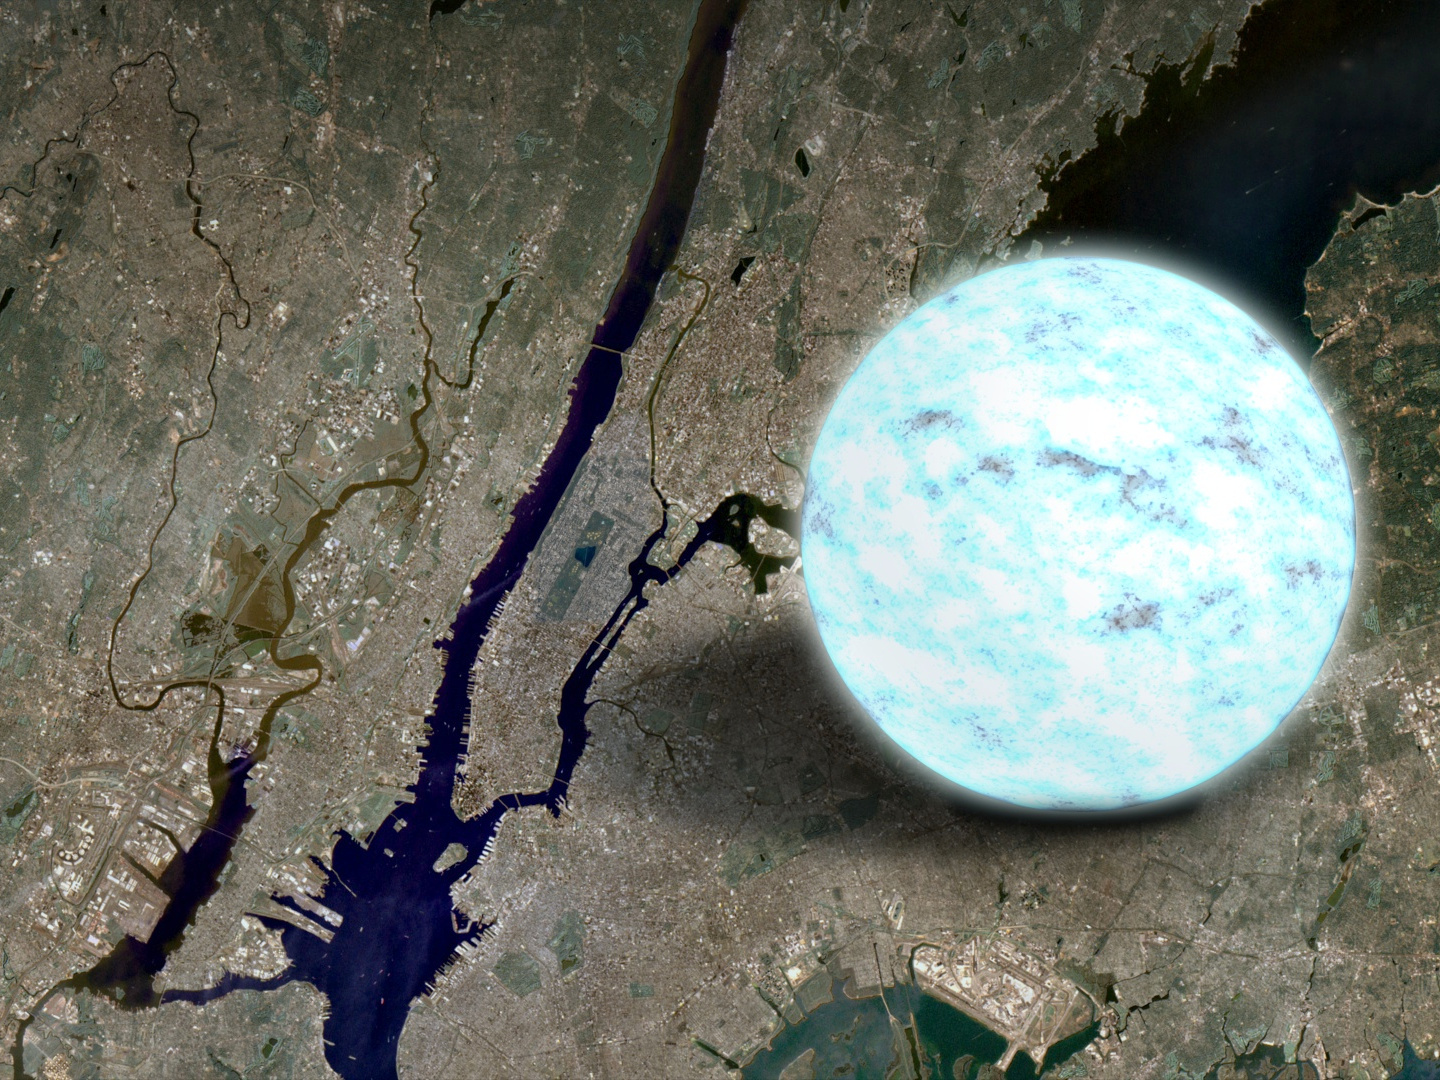 This illustration compares the size of a neutron star to Manhattan Island in New York, which is about 13 miles long. A neutron star is the crushed core left behind when a massive star explodes as a supernova and is the densest object astronomers can directly observe. Illustration credits: NASA's Goddard Space Flight Center.